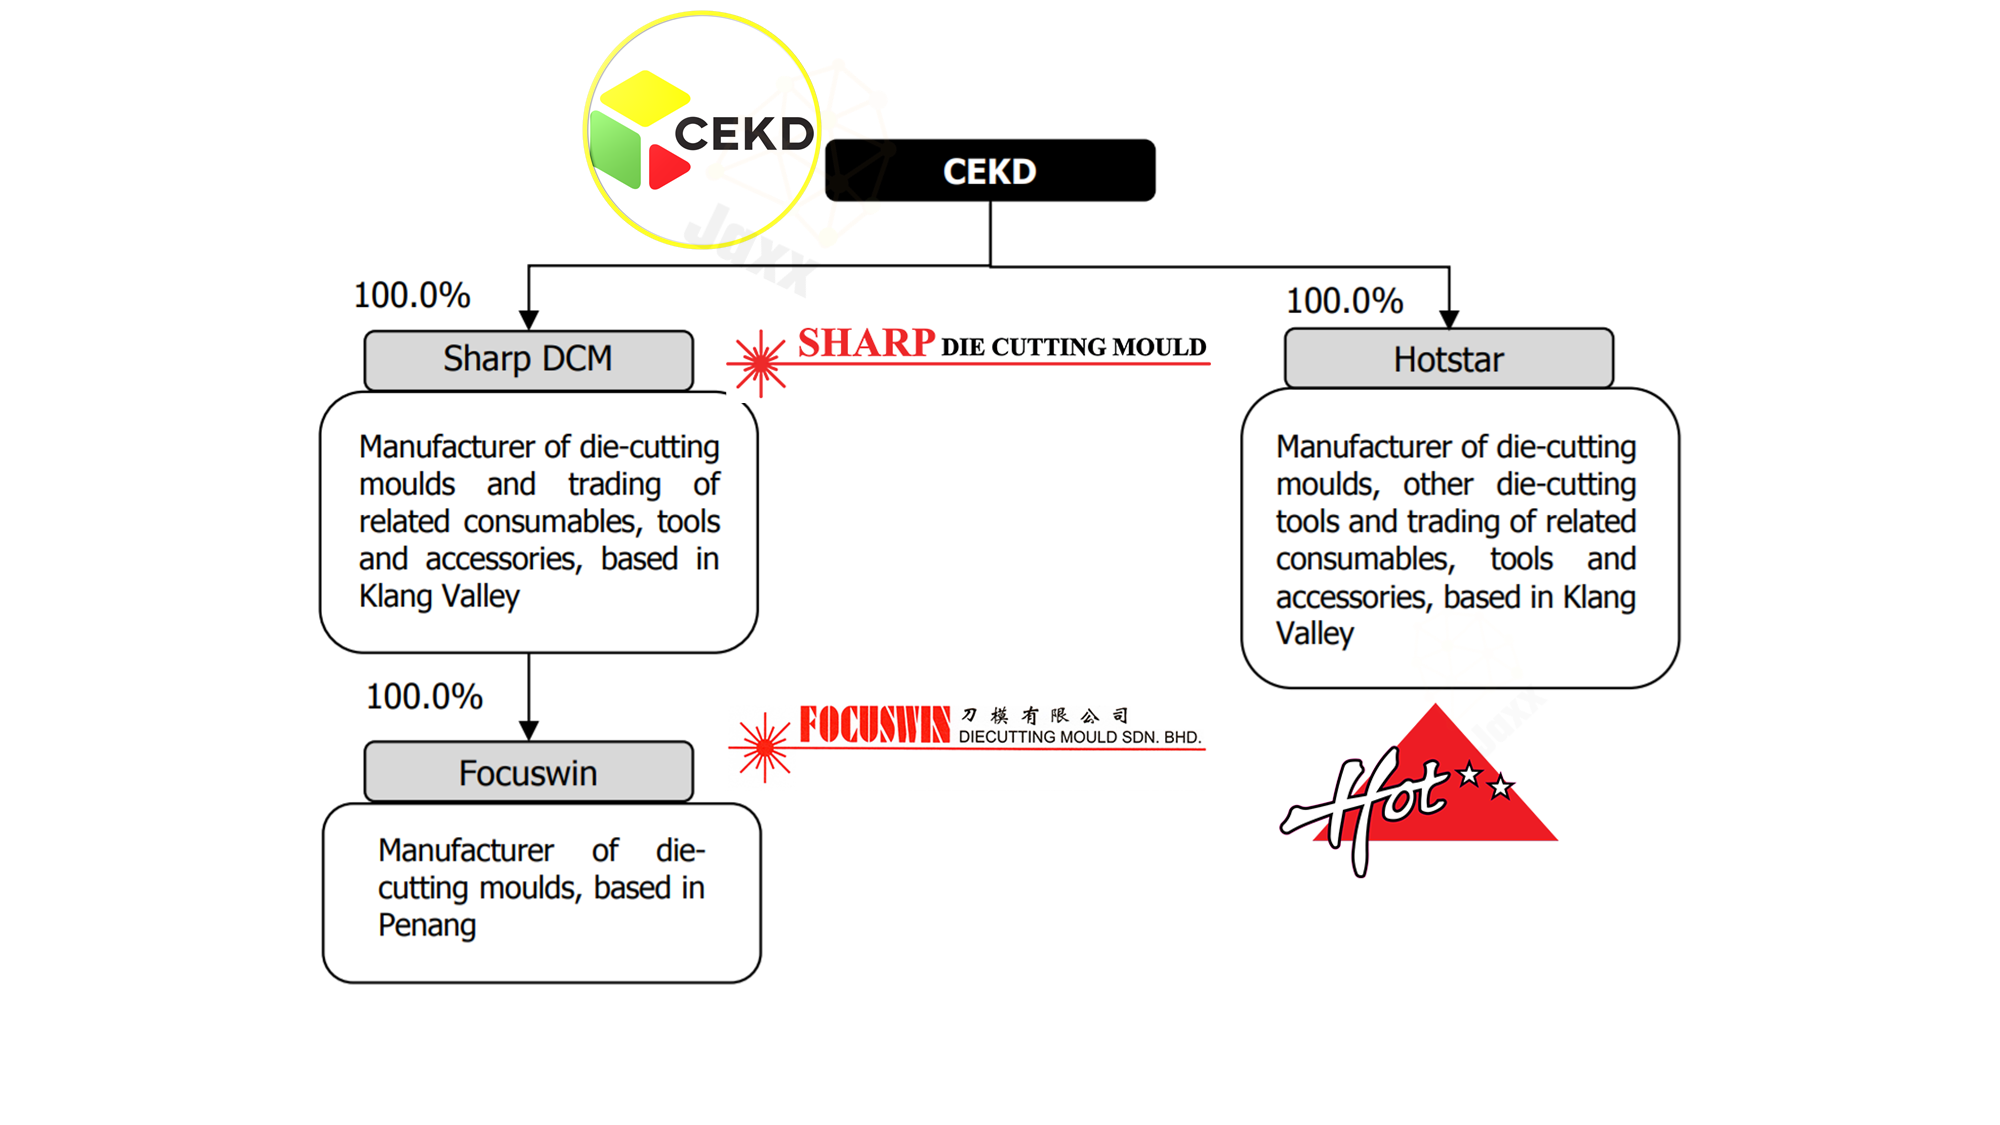 CEKD Group is a die-cutting solutions provider   CEKD Listing in Ace Market   CEKD IPO Review   Sharp DCM Focuswin Hotstar are subsidiaries of CEKD Berhad   IPO Review of CEKD Group   CEKD Company Structure